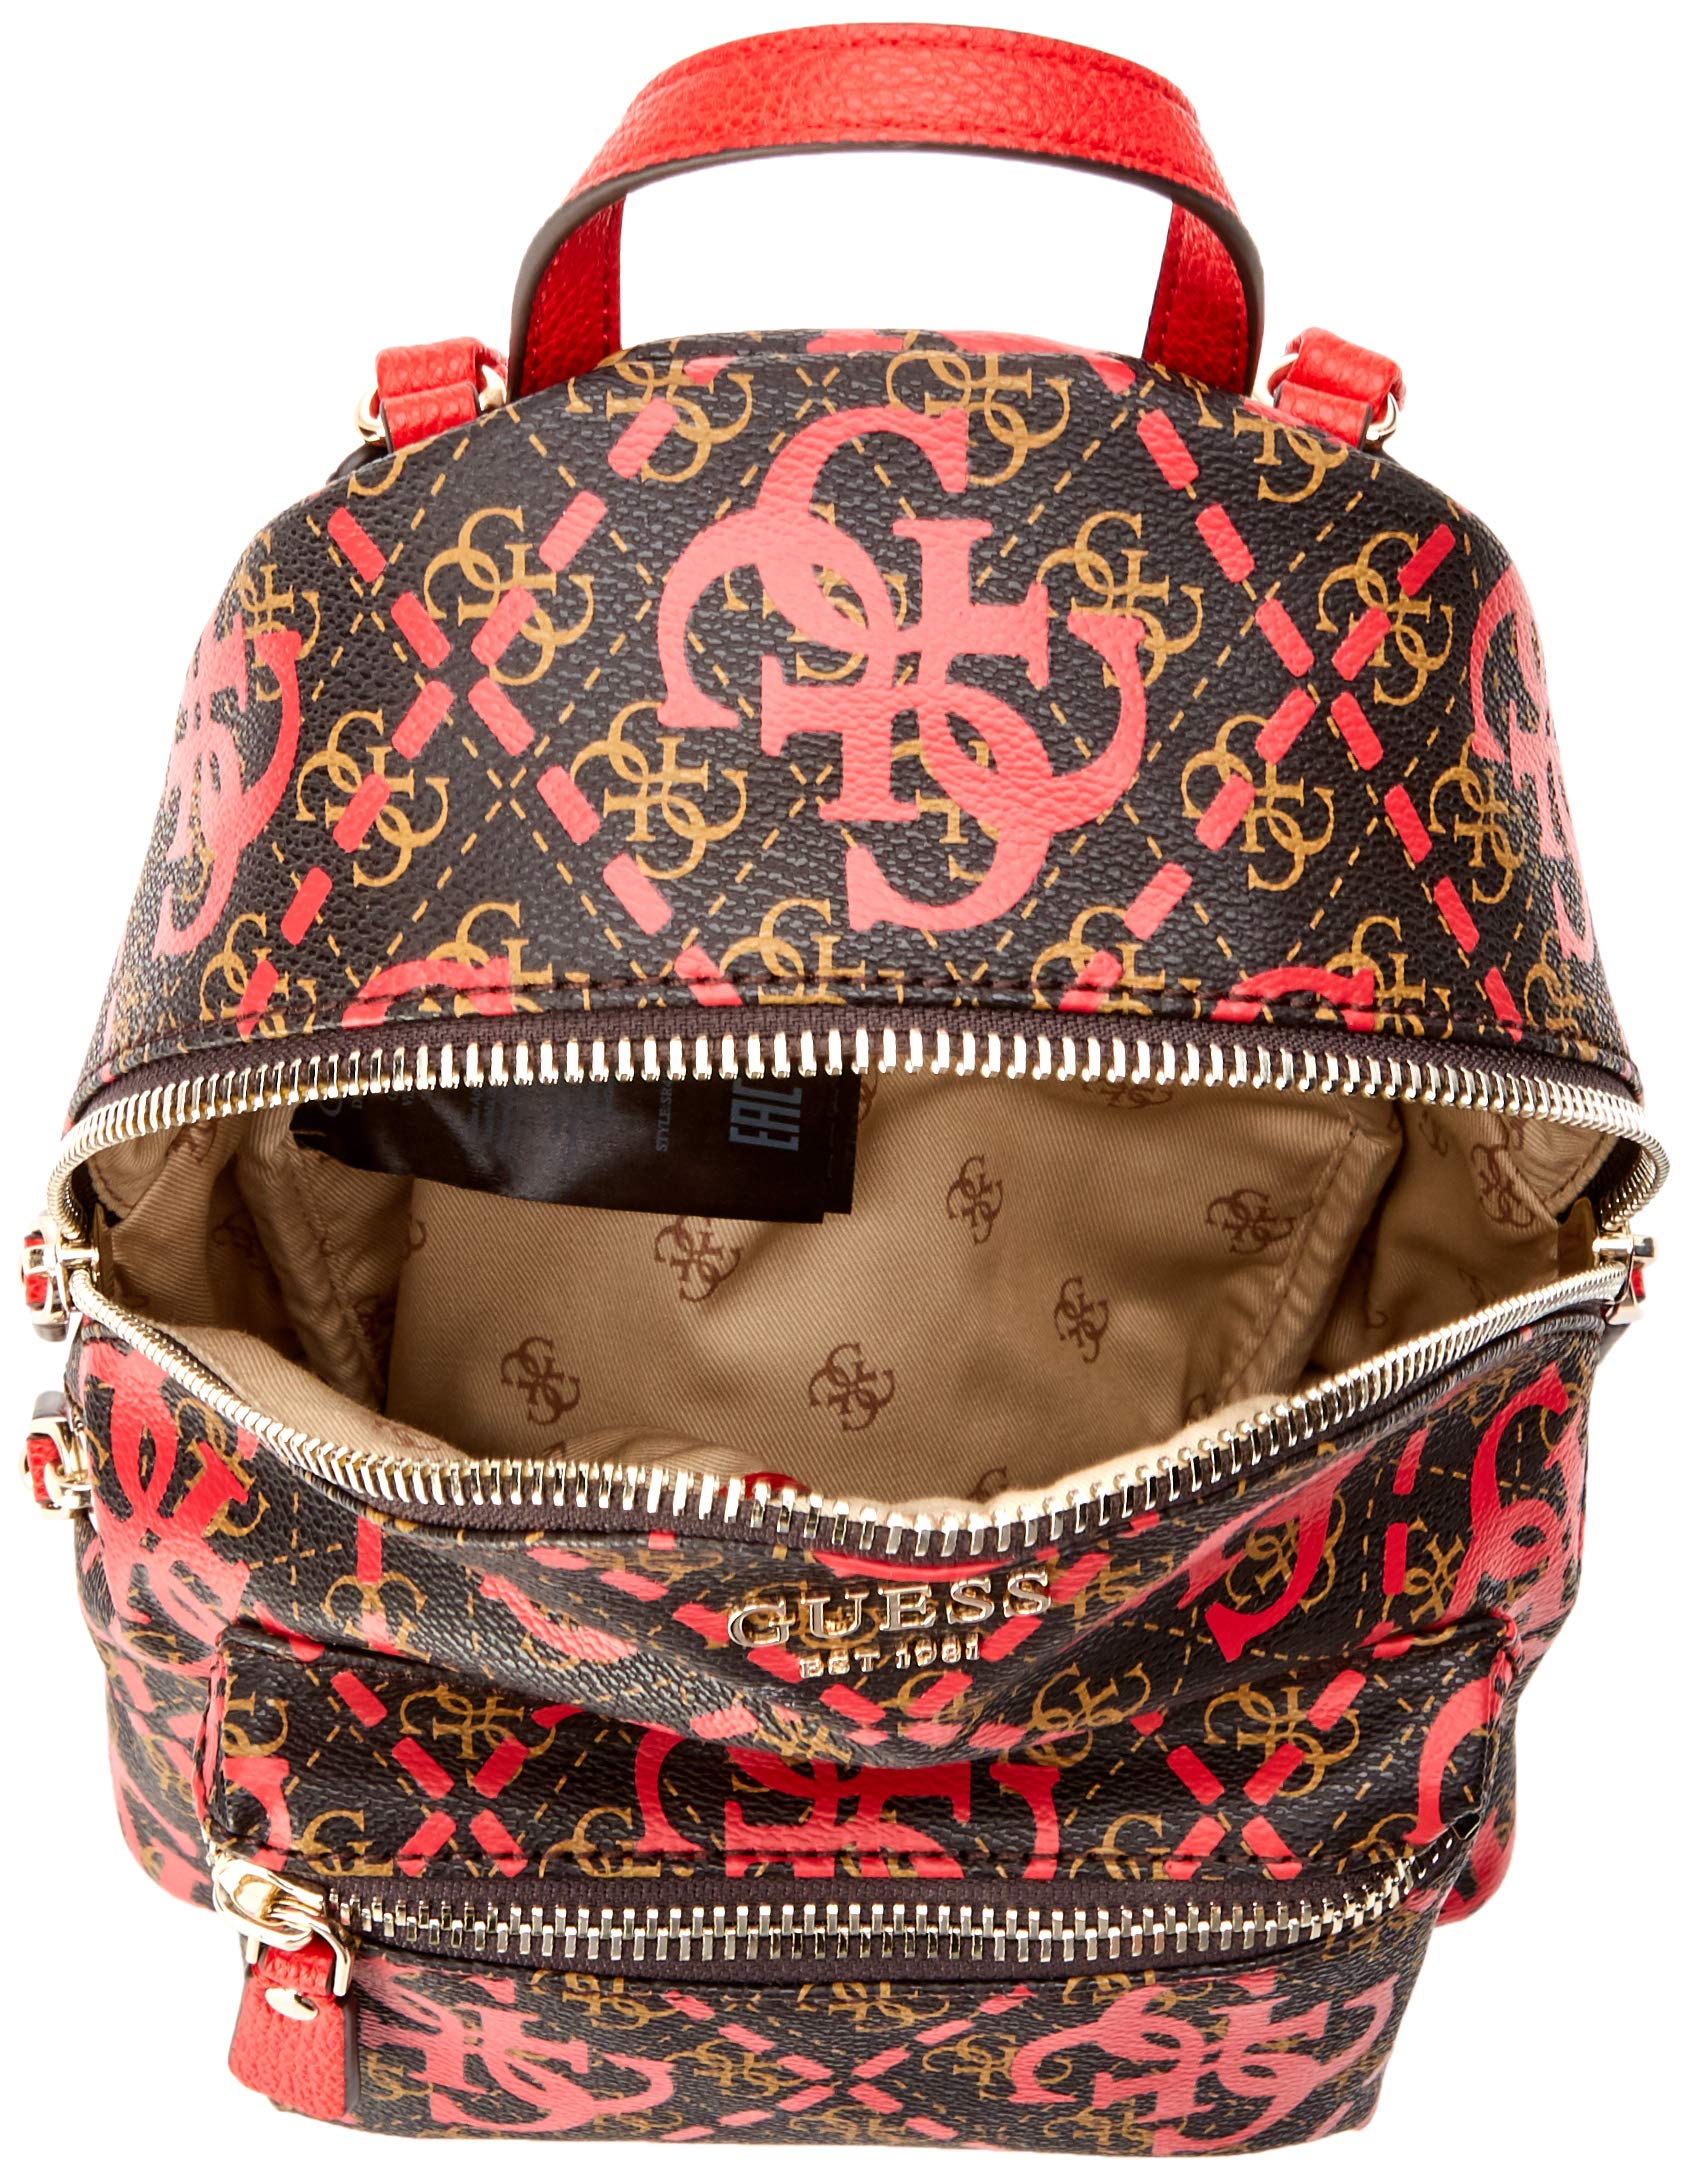 91y%2BR7BC0jL - Guess - Leeza Backpack, Mujer, Multicolor (Red Multi), 22x29x10.5 cm (W x H L)